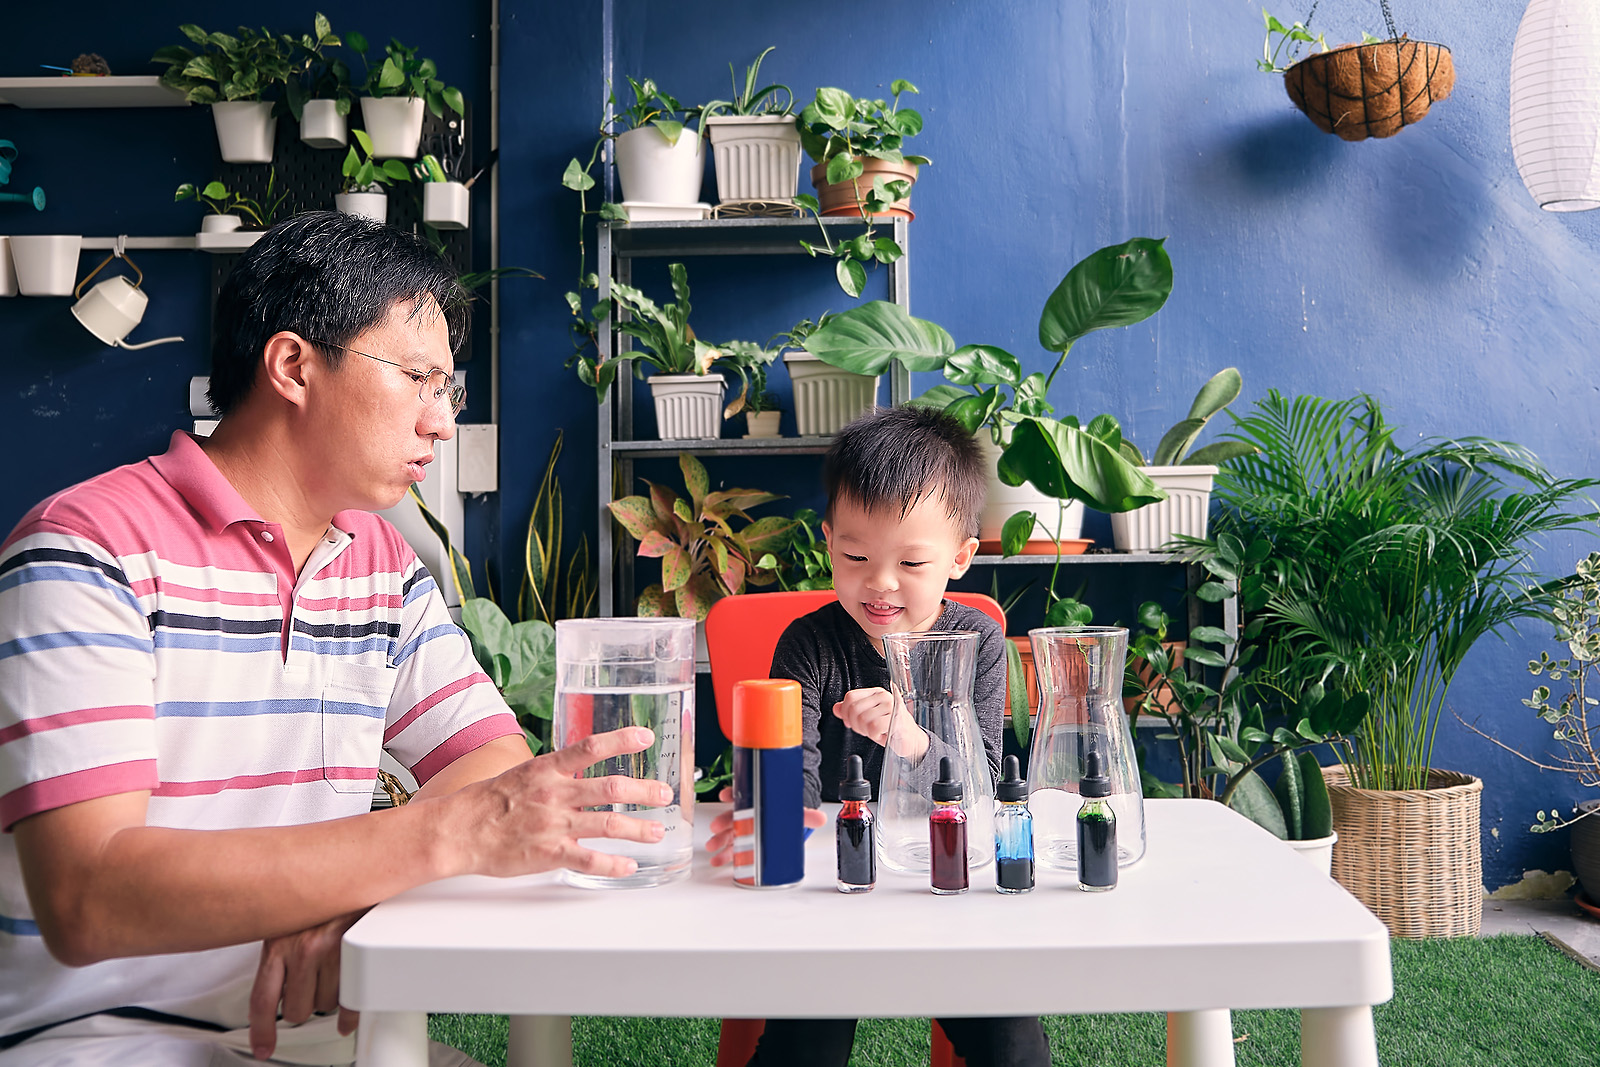 Parent sitting homeschooling with little kid, Father and son having fun preparing easy science experiment